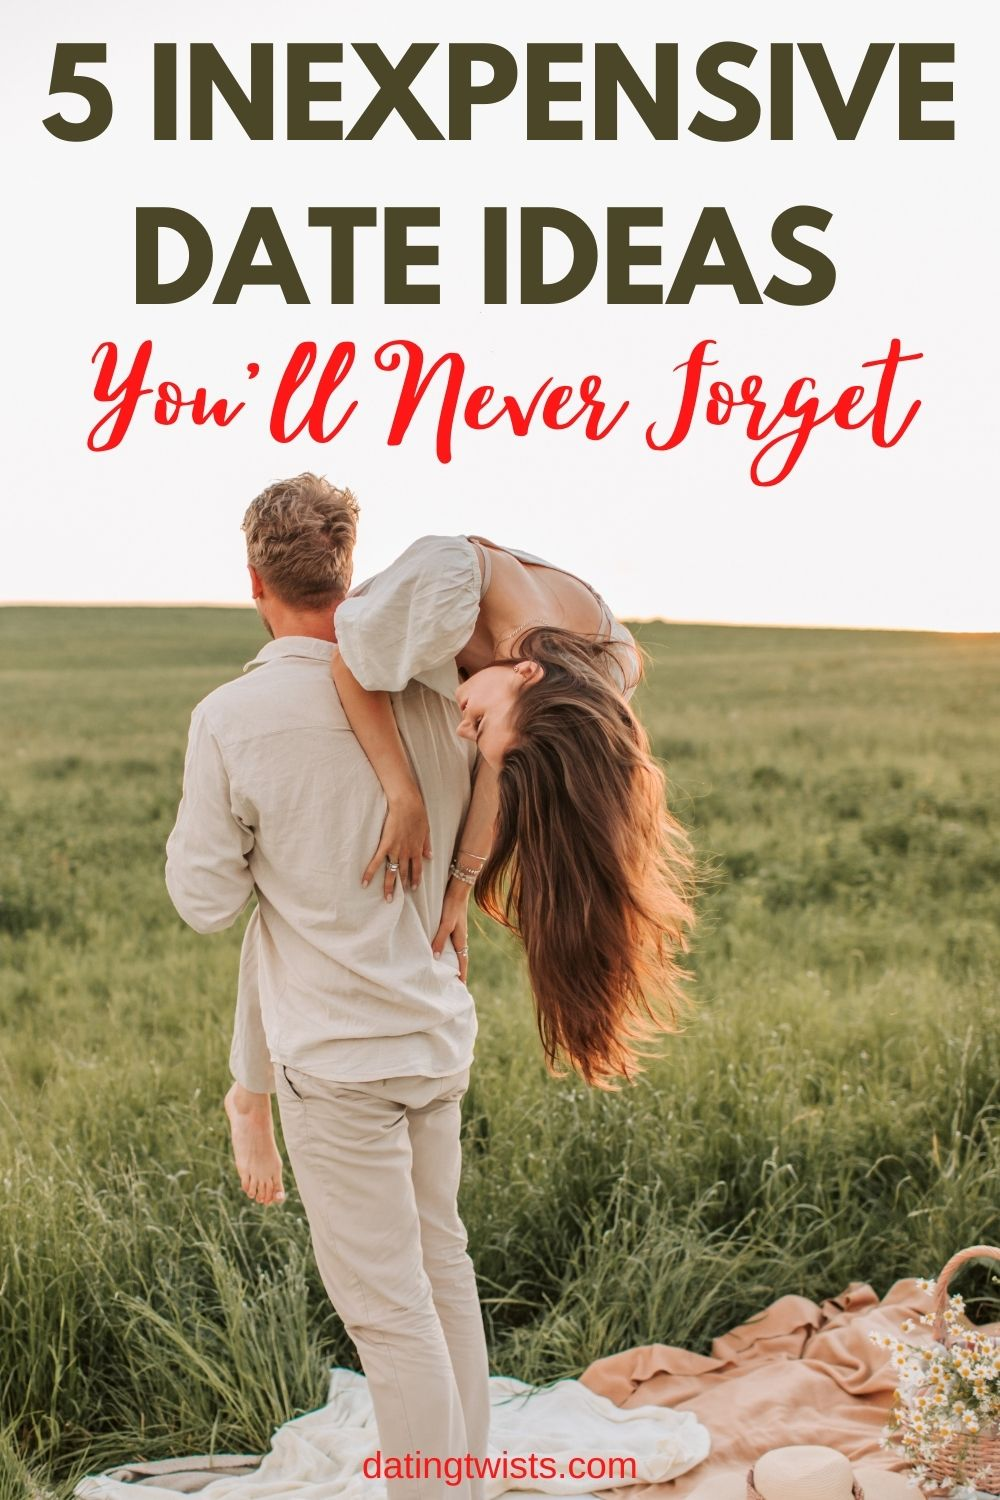 5 inexpensive date ideas you'll never forget - Pinterest image